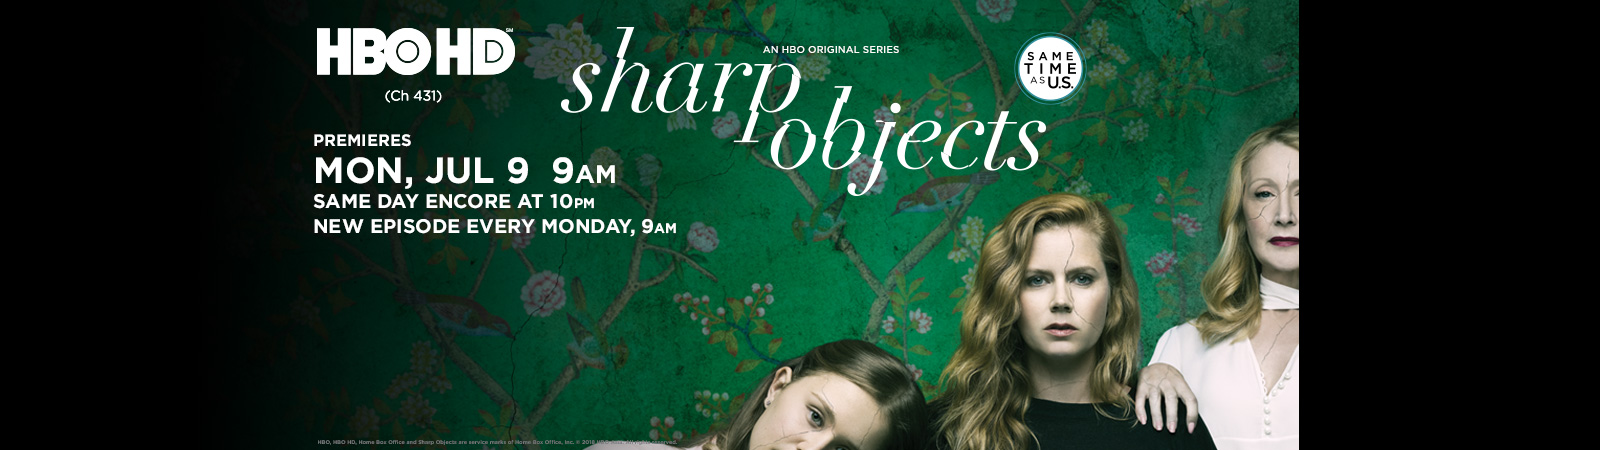 HBO - Sharp Objects